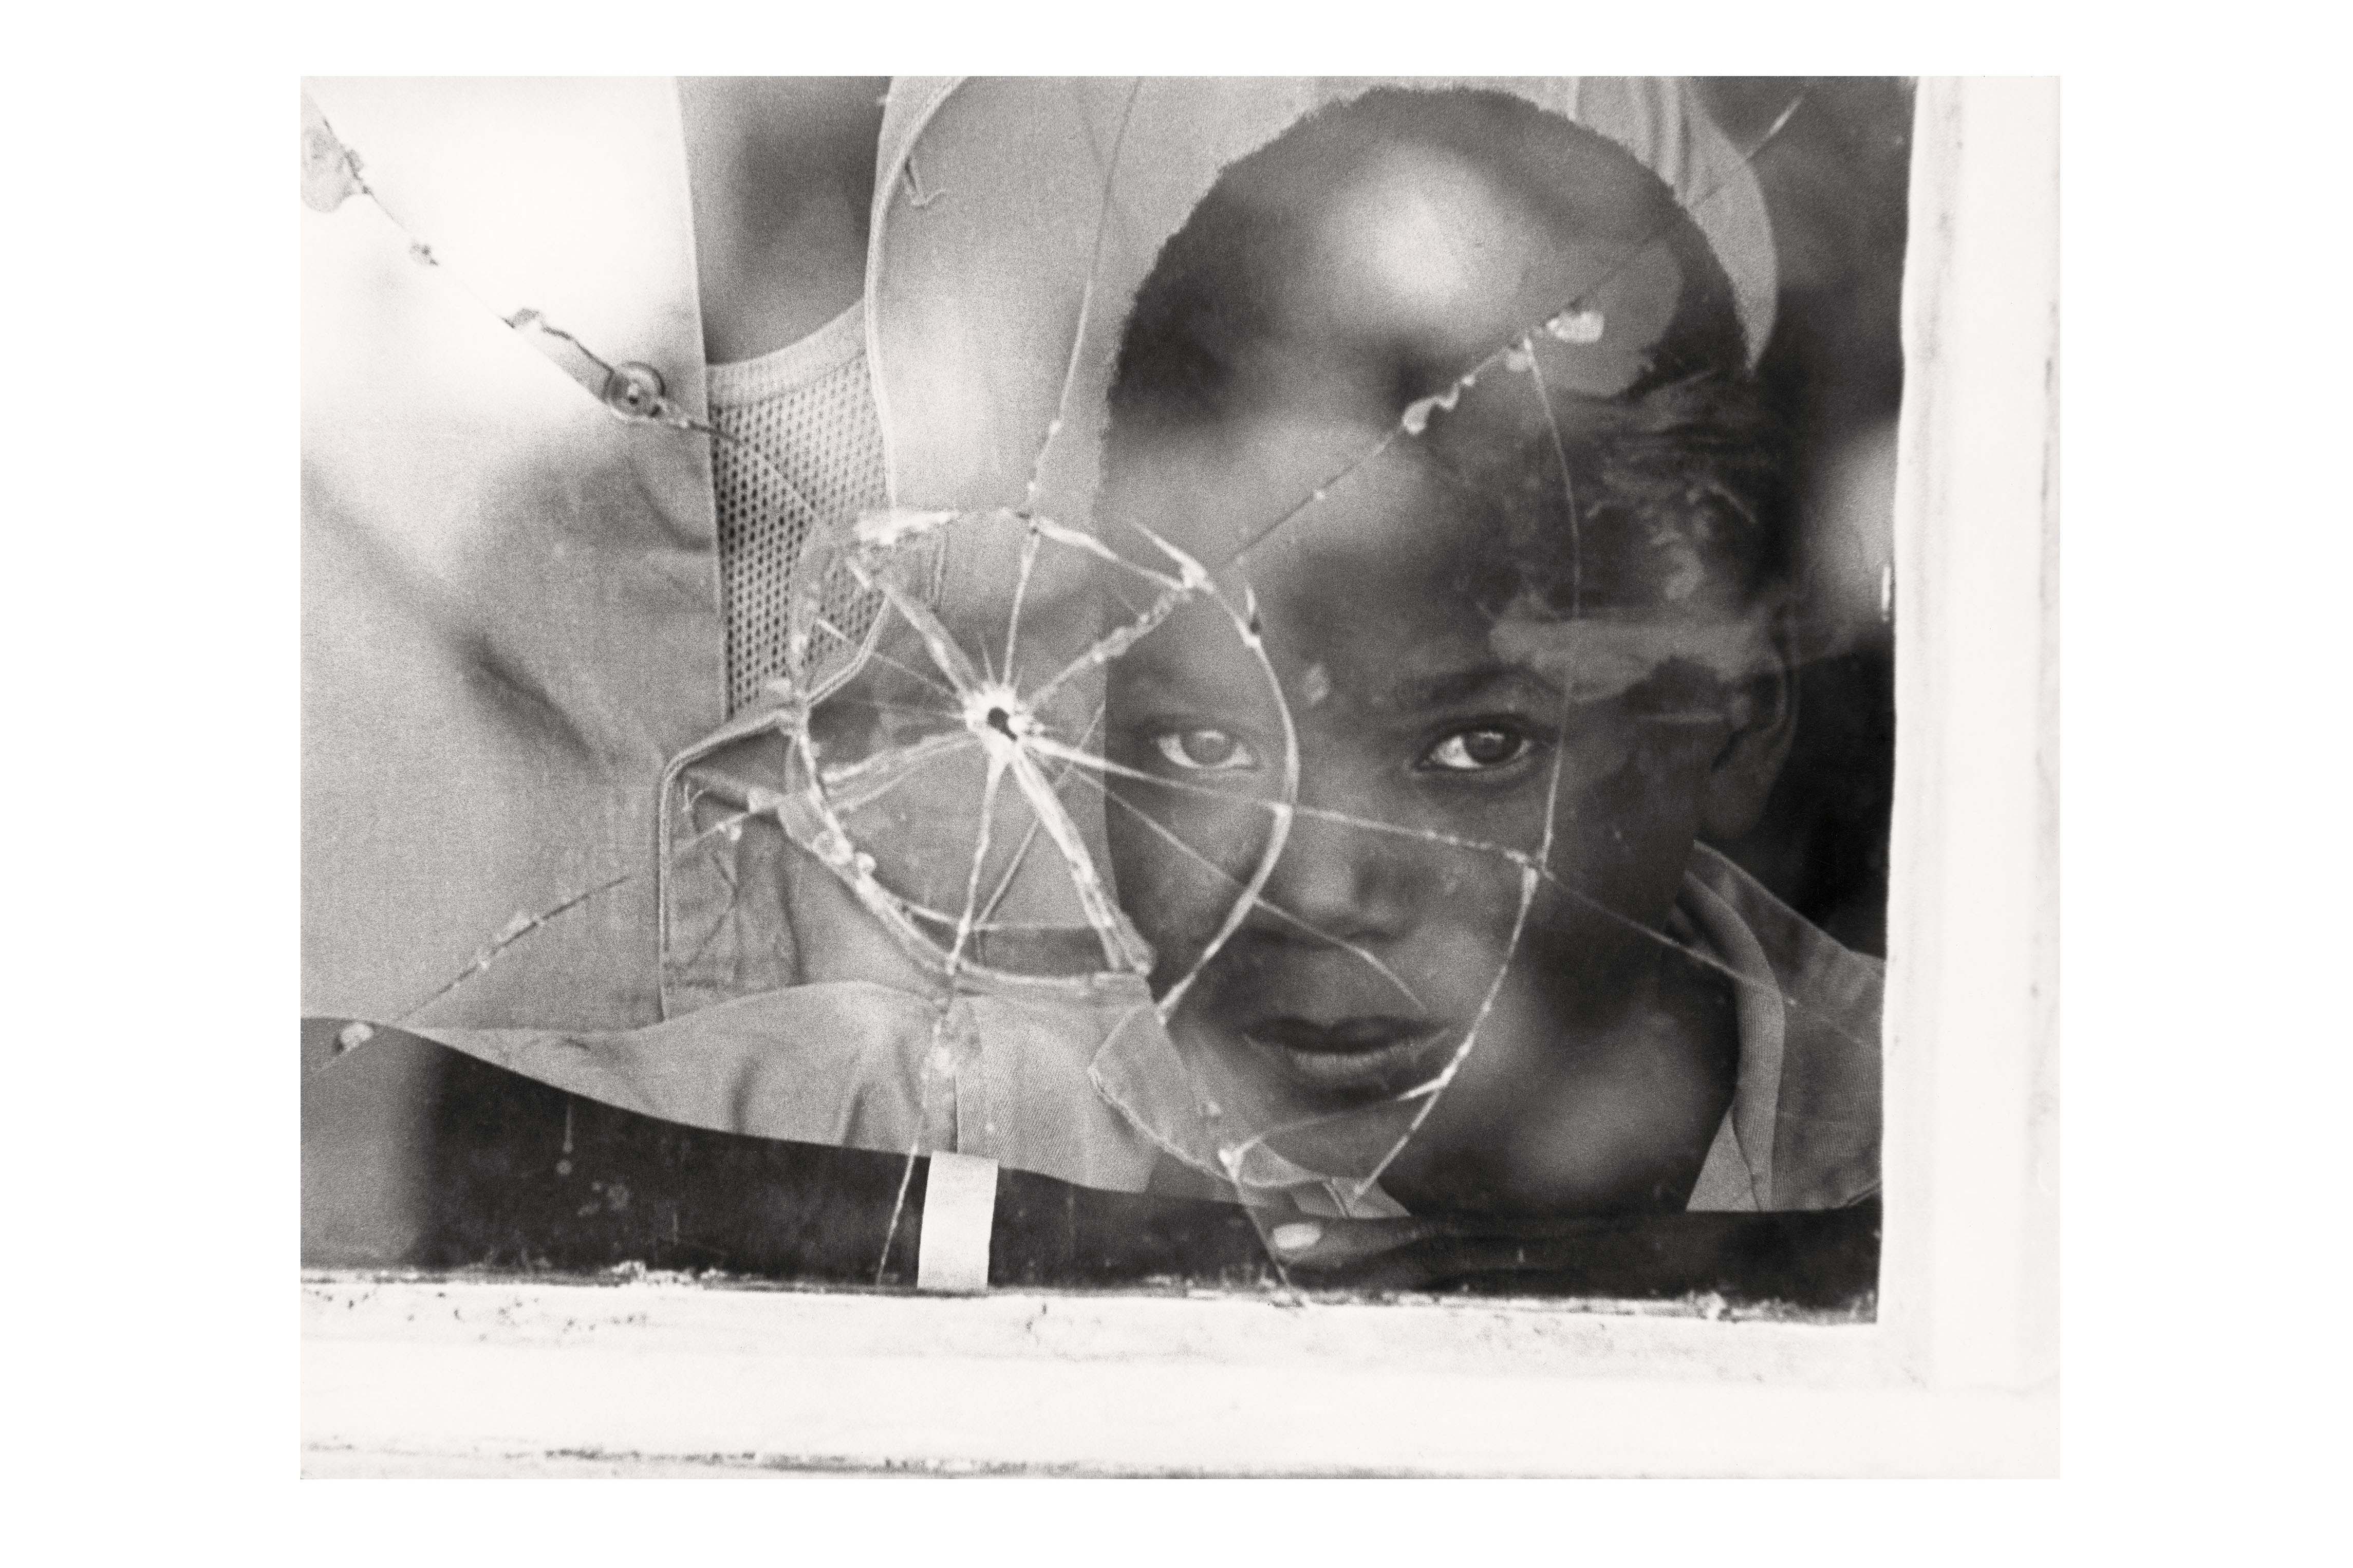 A Mozambican boy looks through a window with a bullet hole